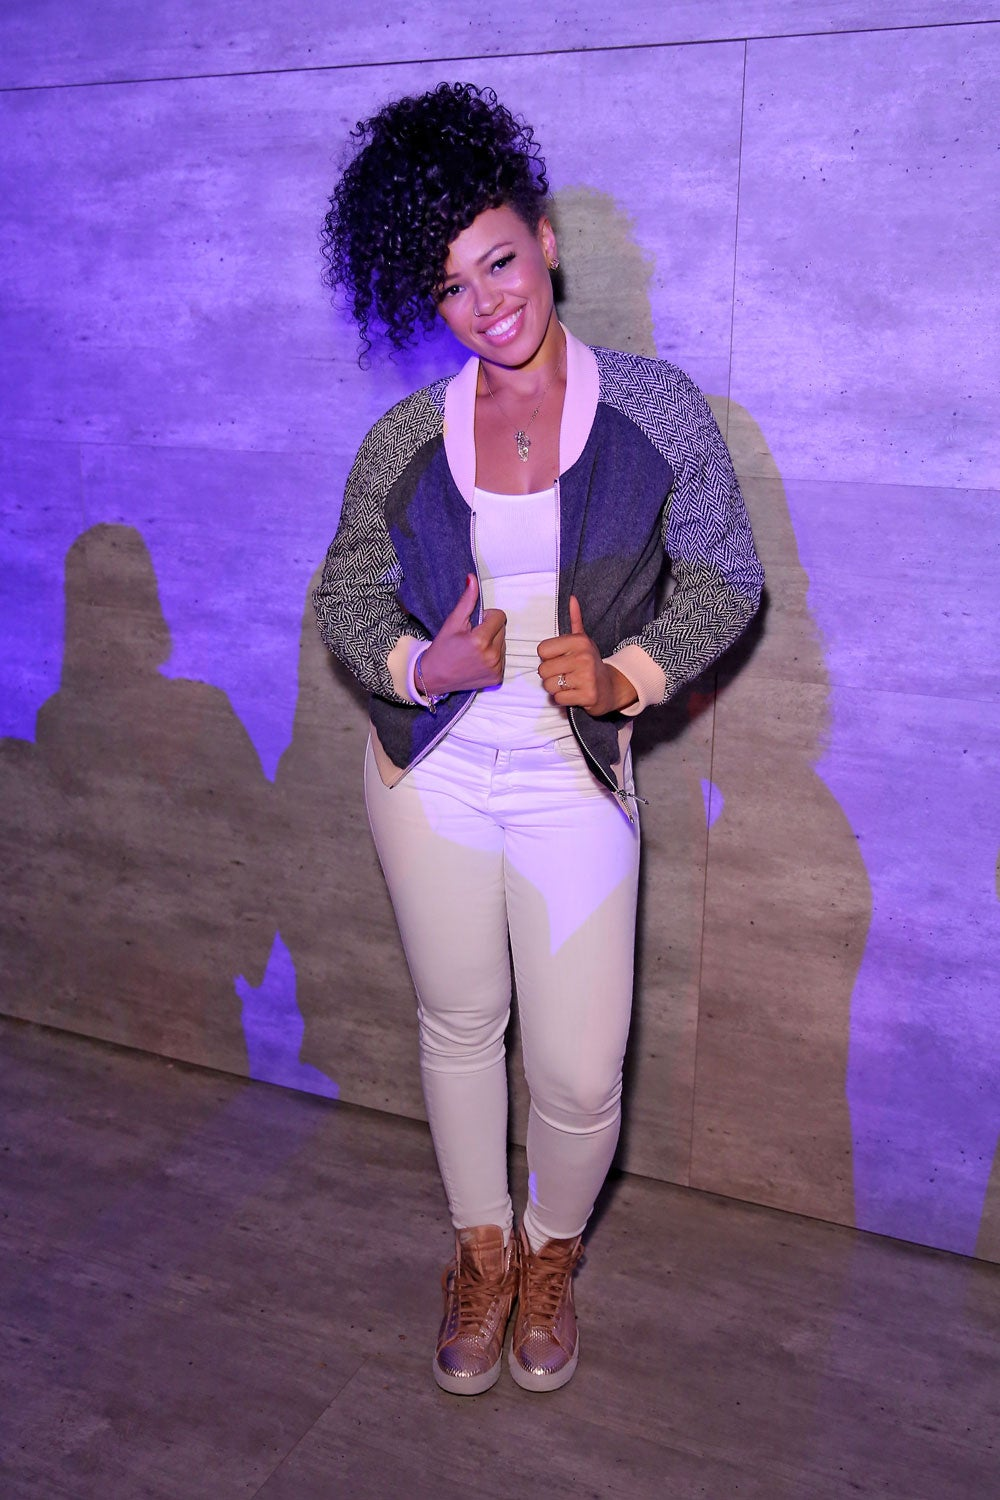 Easy Listening: 7 Hidden Gems From ESSENCE Festival Performer Elle Varner That'll Get You Through The Week